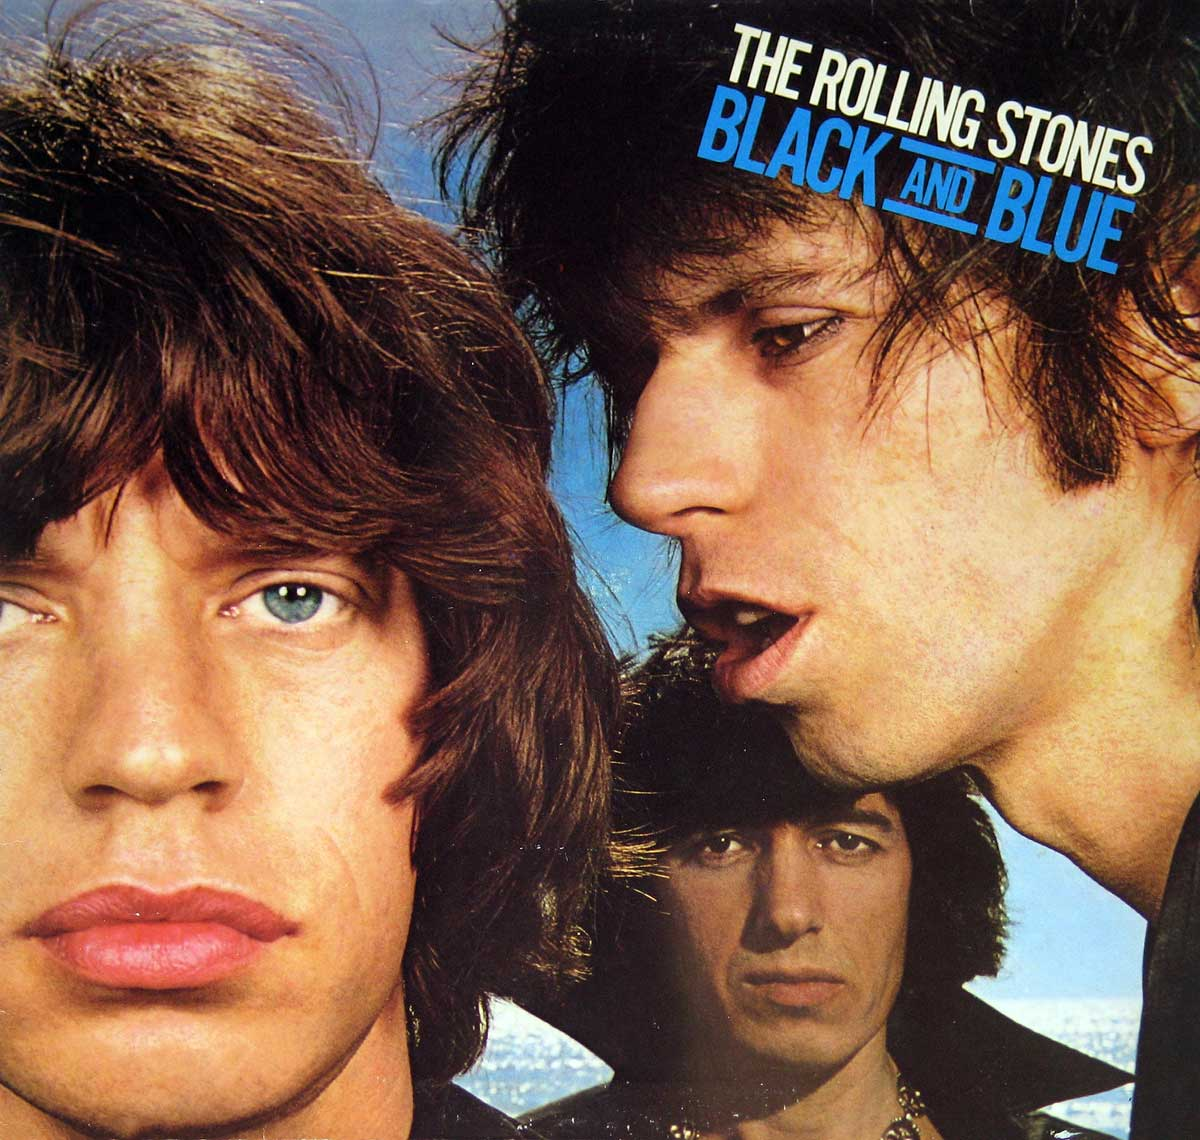 Album Front Cover Photo of THE ROLLING STONES - Black and Blue